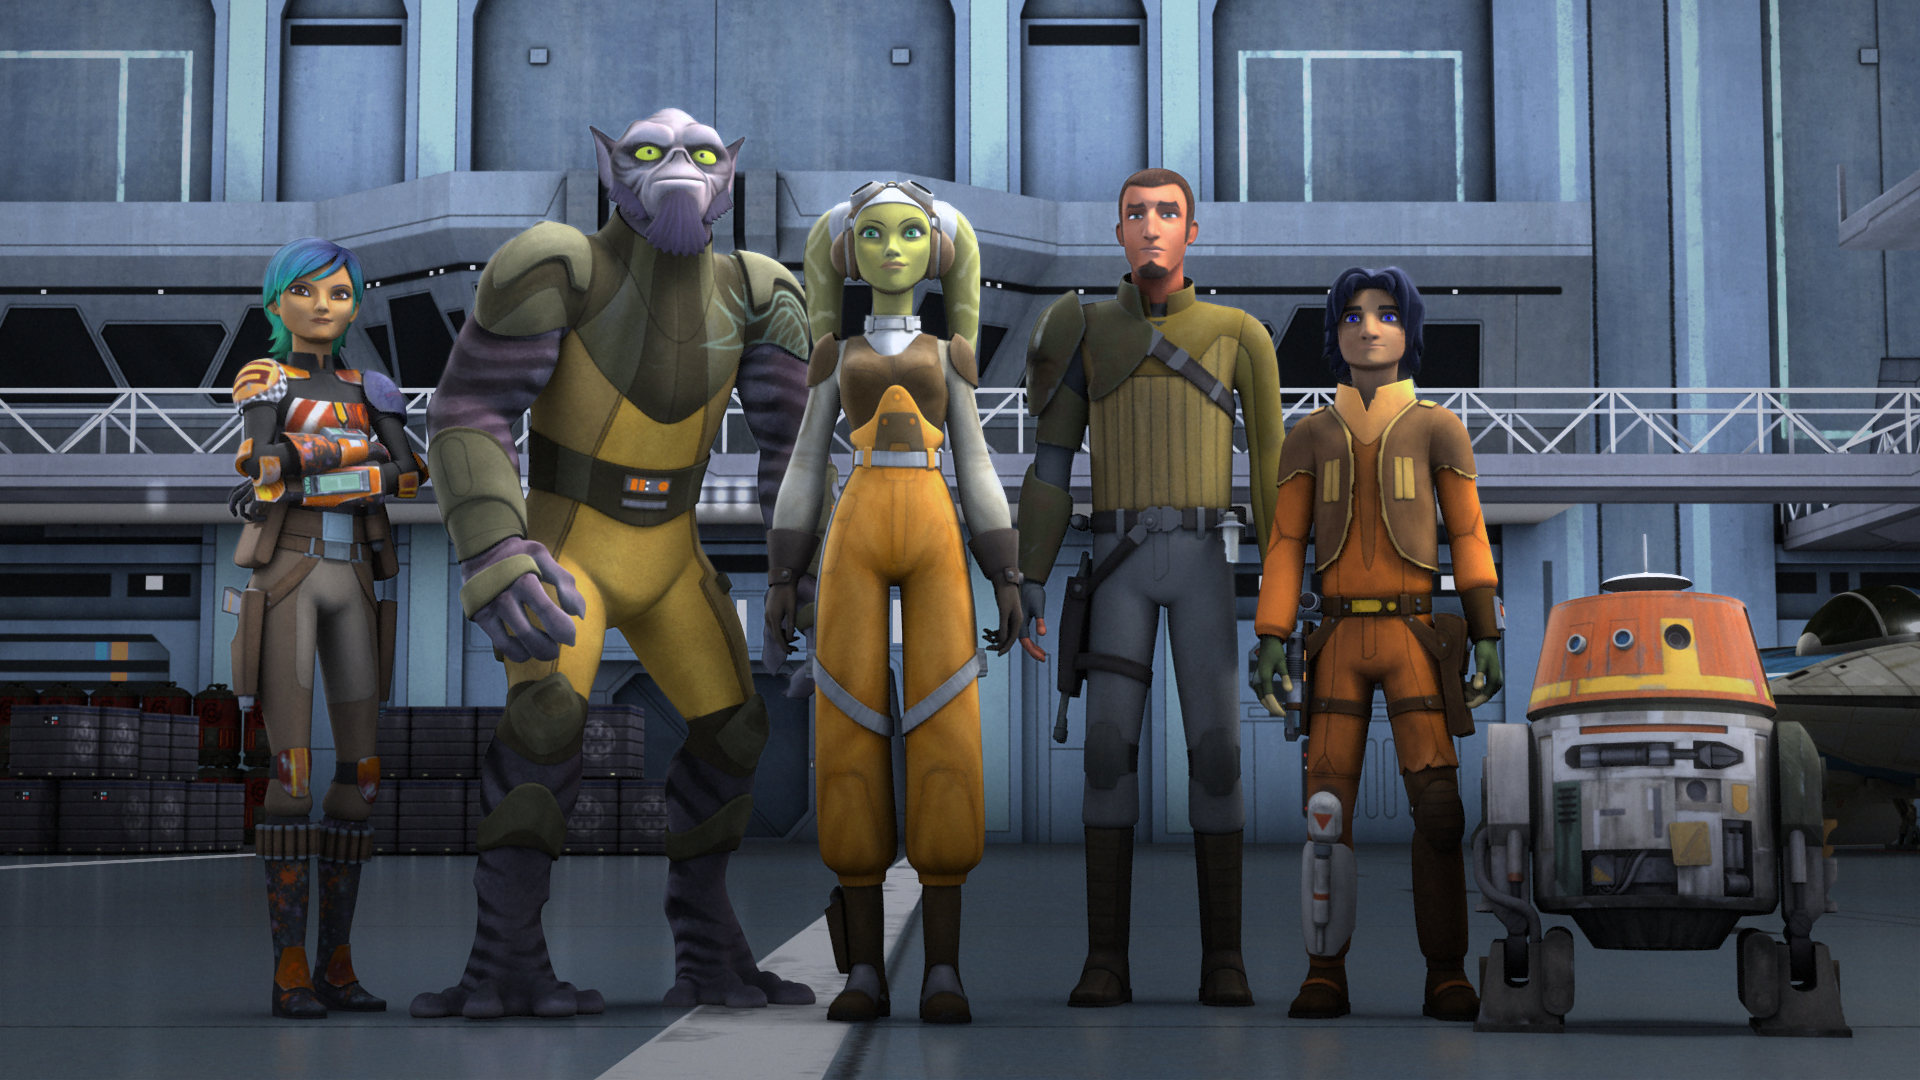 http://vignette3.wikia.nocookie.net/starwars/images/0/05/The_crew_of_the_Ghost.jpg/revision/latest?cb=20160211223921